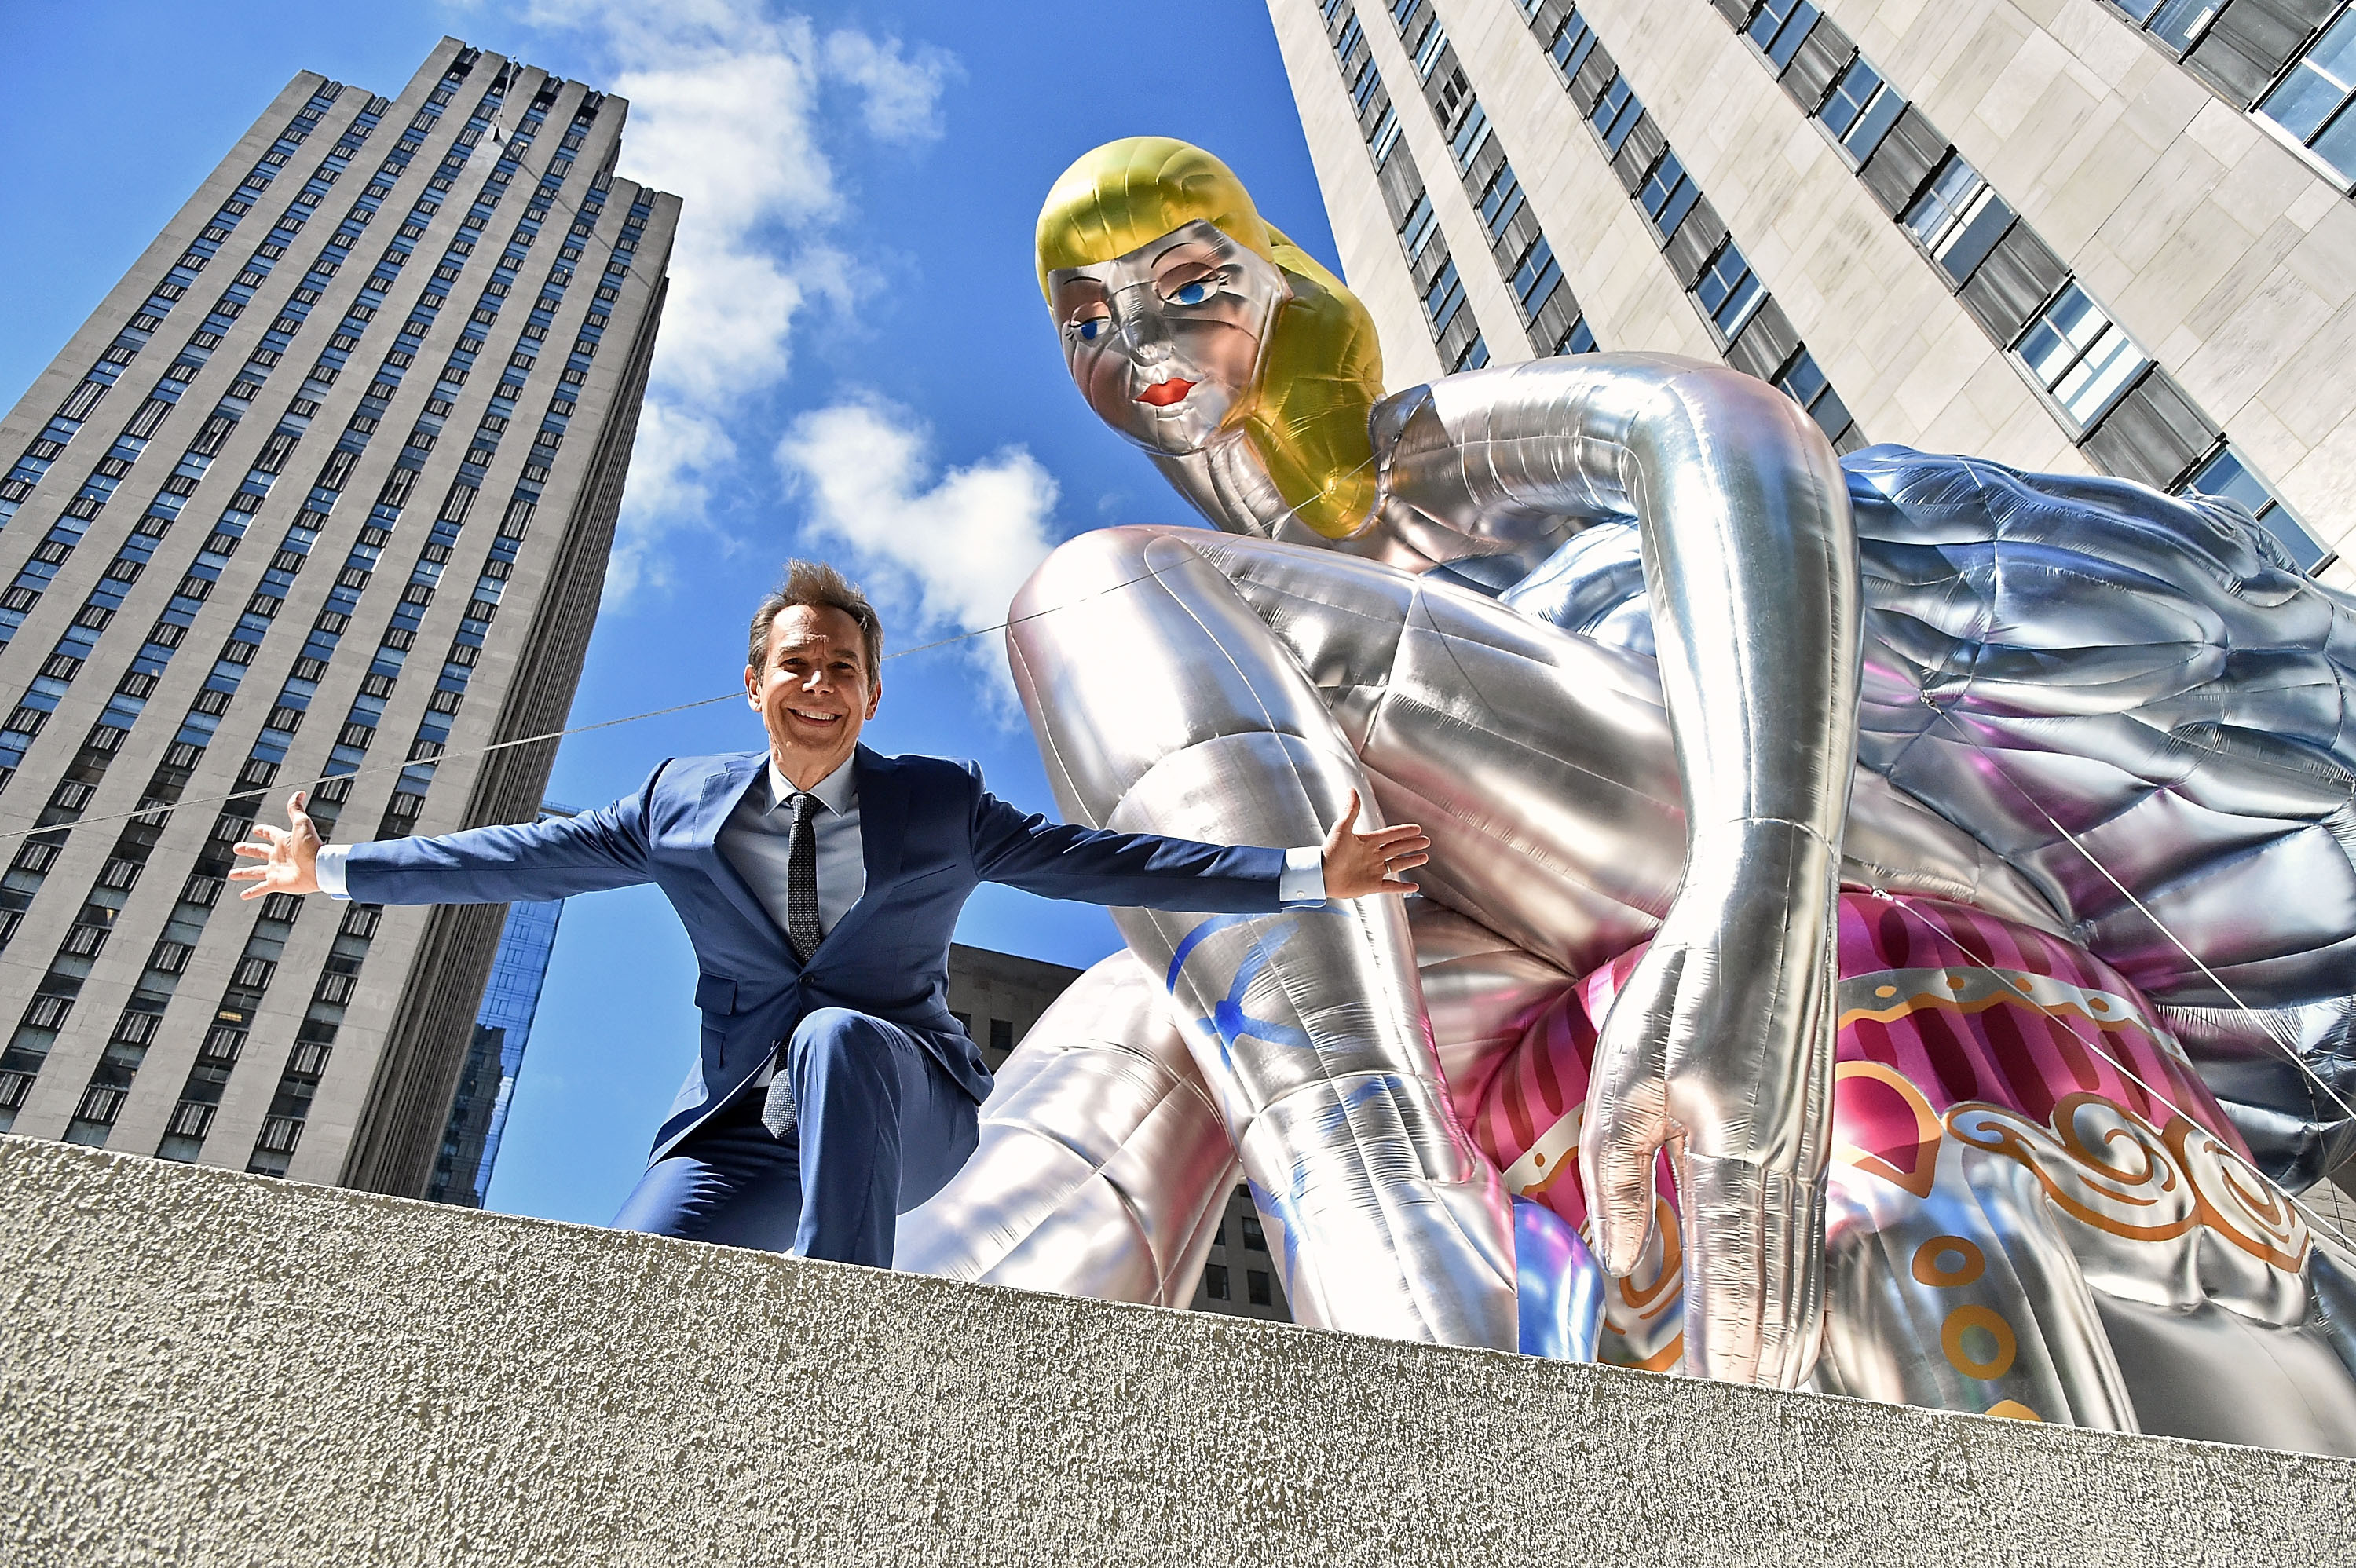 jeff koons puppy vase price of jeff koons talks art basel hong kong and china vs the west hashtag with jeff koons with seated ballerina a public art project at the rockefeller center in new